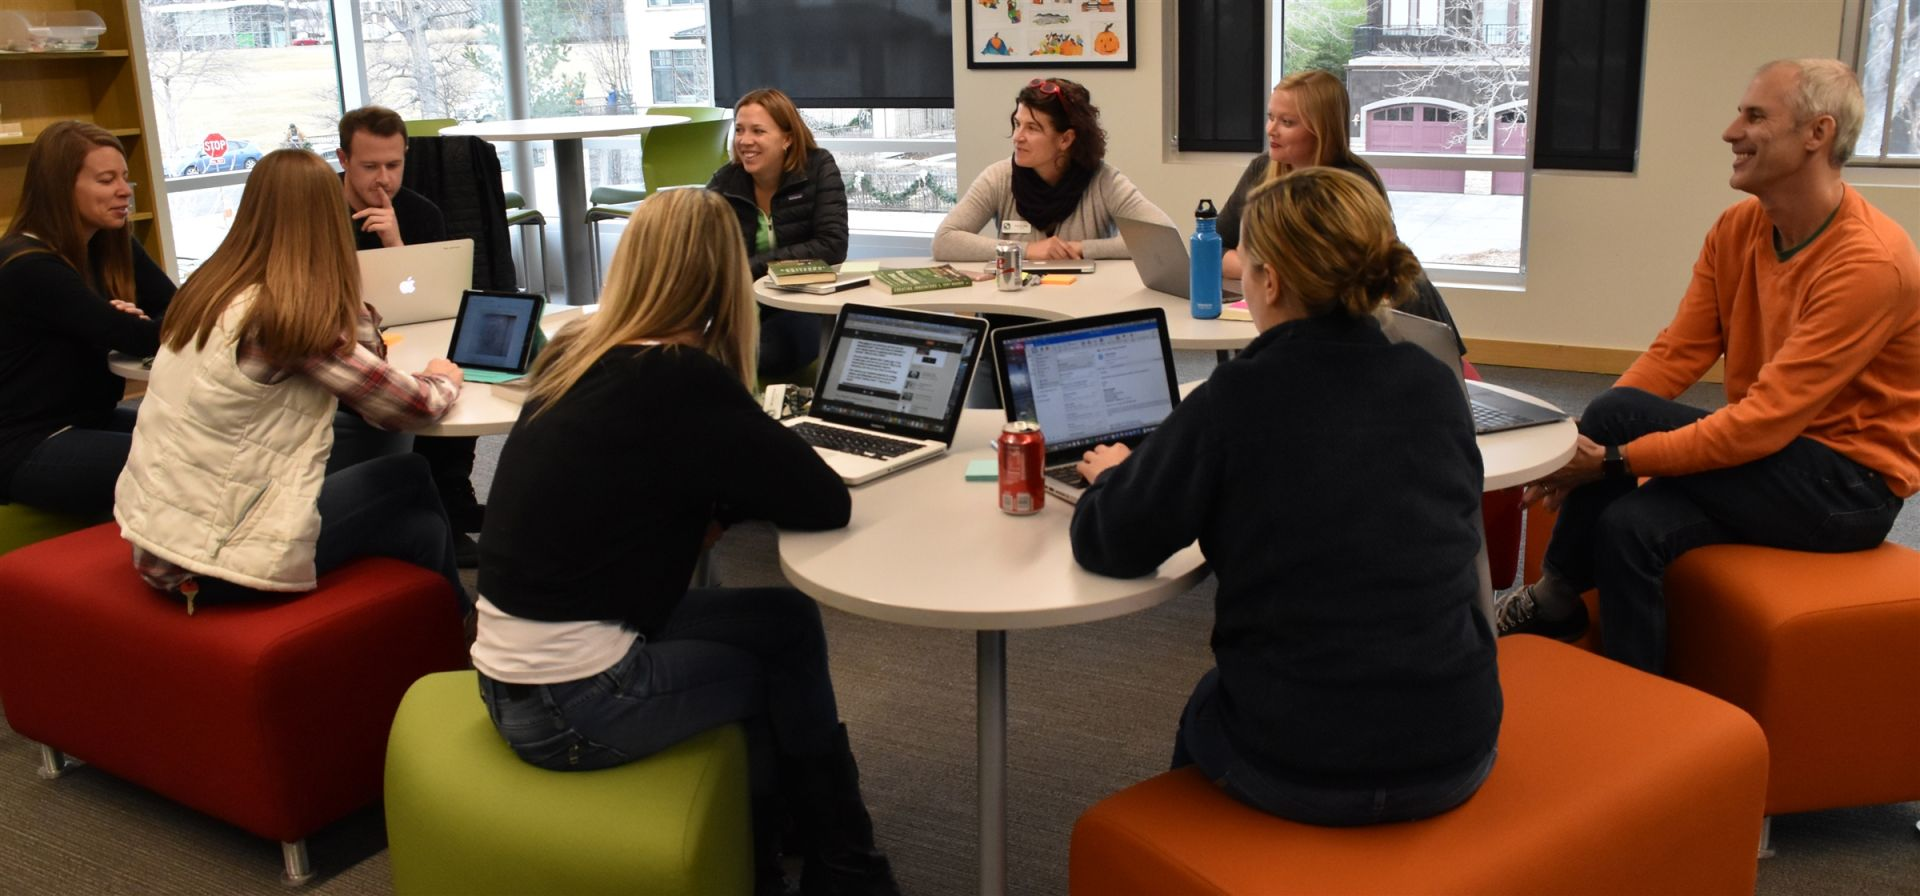 With several professional days built into the school year, teachers have time to deepen their connections and grow their skills.